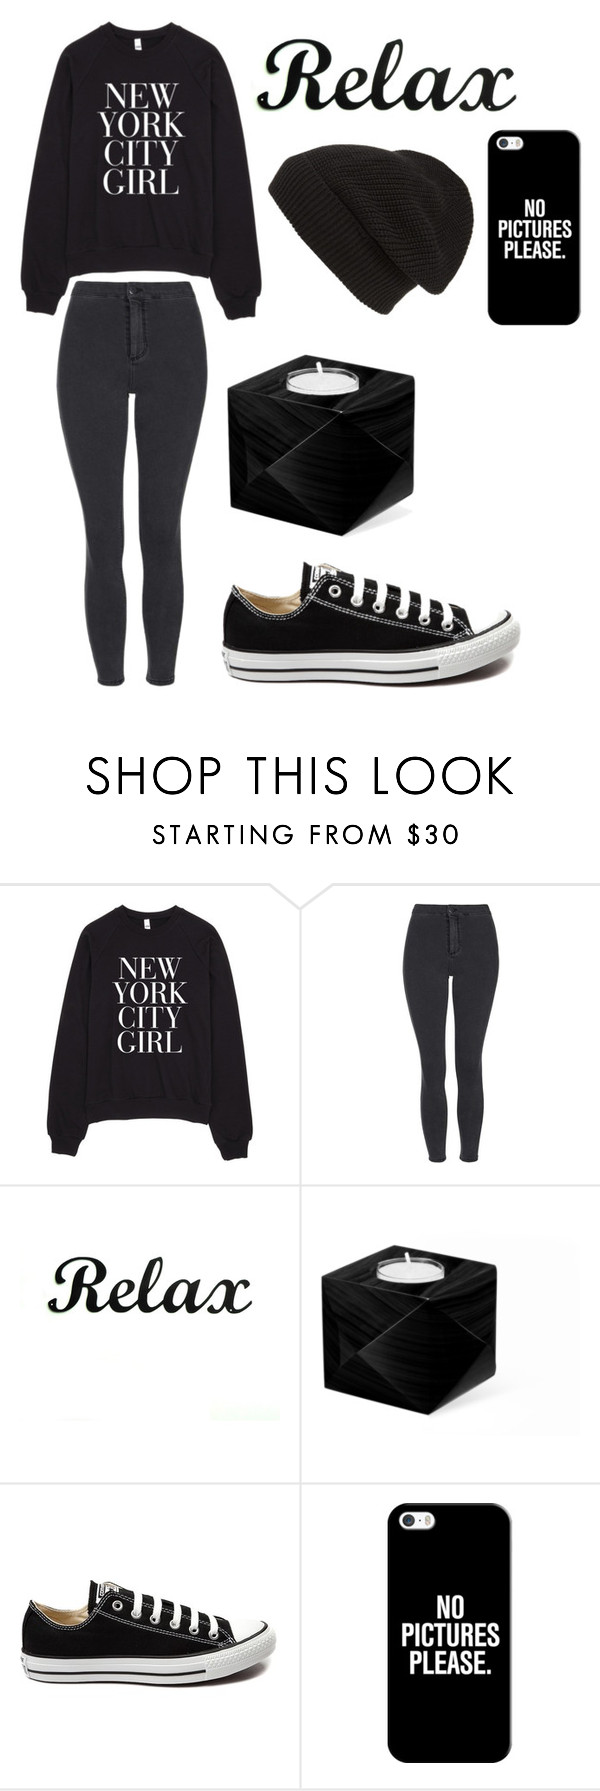 """Chilax"" by sophia-marie-beauty on Polyvore featuring Topshop, Converse, Casetify, Phase 3, women's clothing, women, female, woman, misses and juniors"